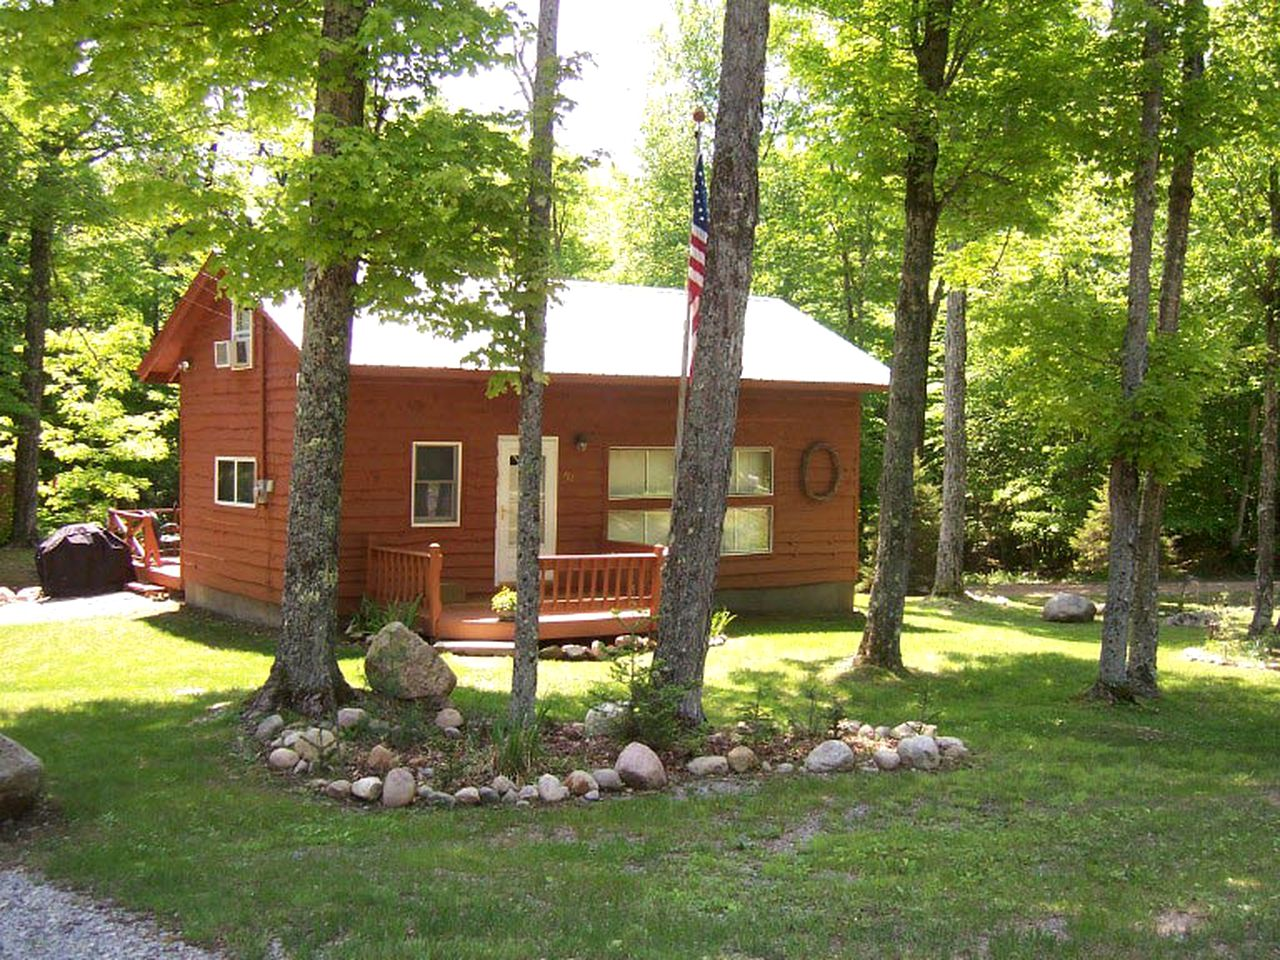 Cabins (Old Forge, New York, United States)